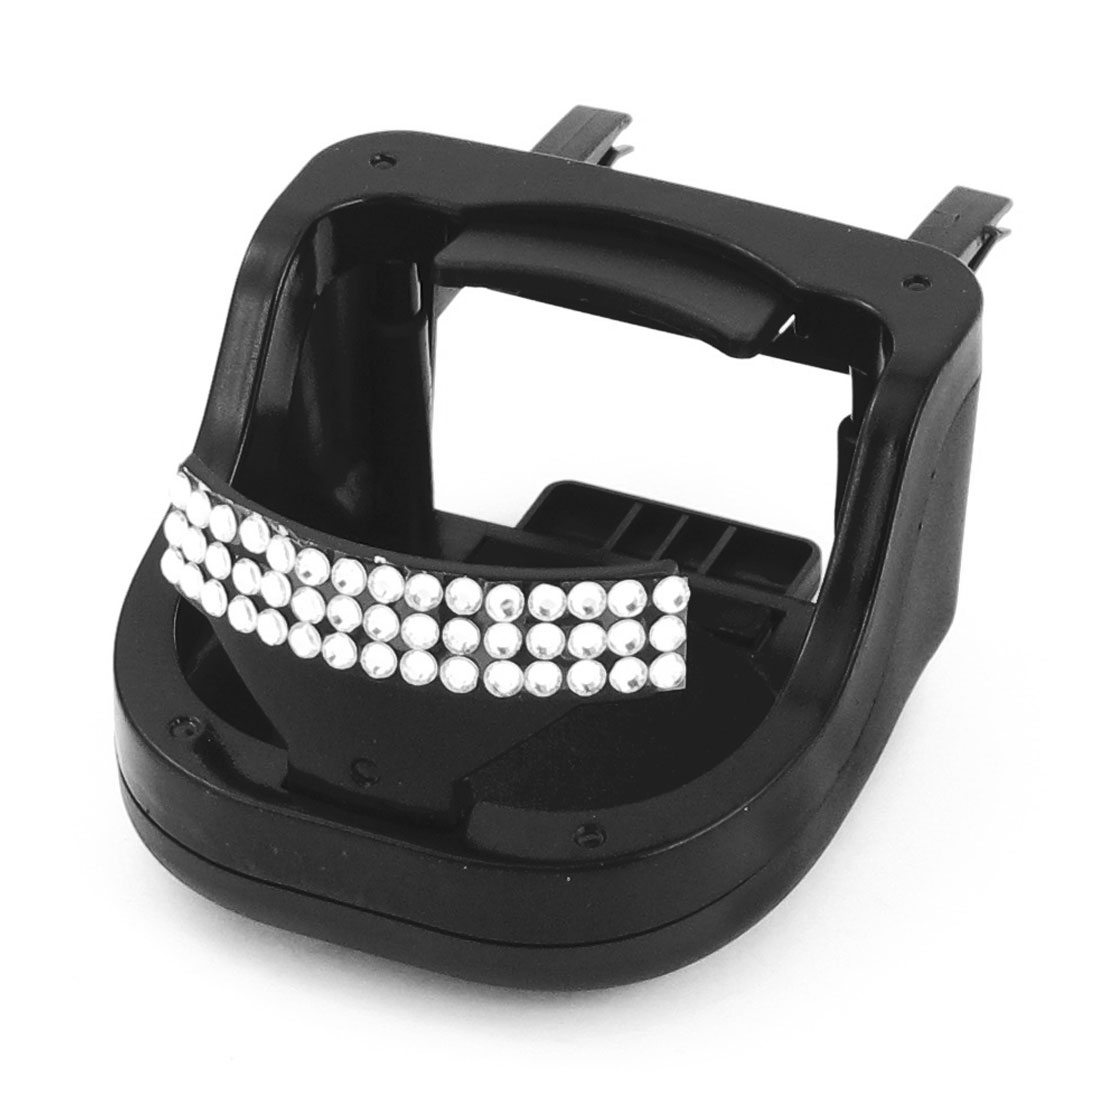 Auto Car Black Glittery Rhinestone Ornament Bottle Drink Cup Holder